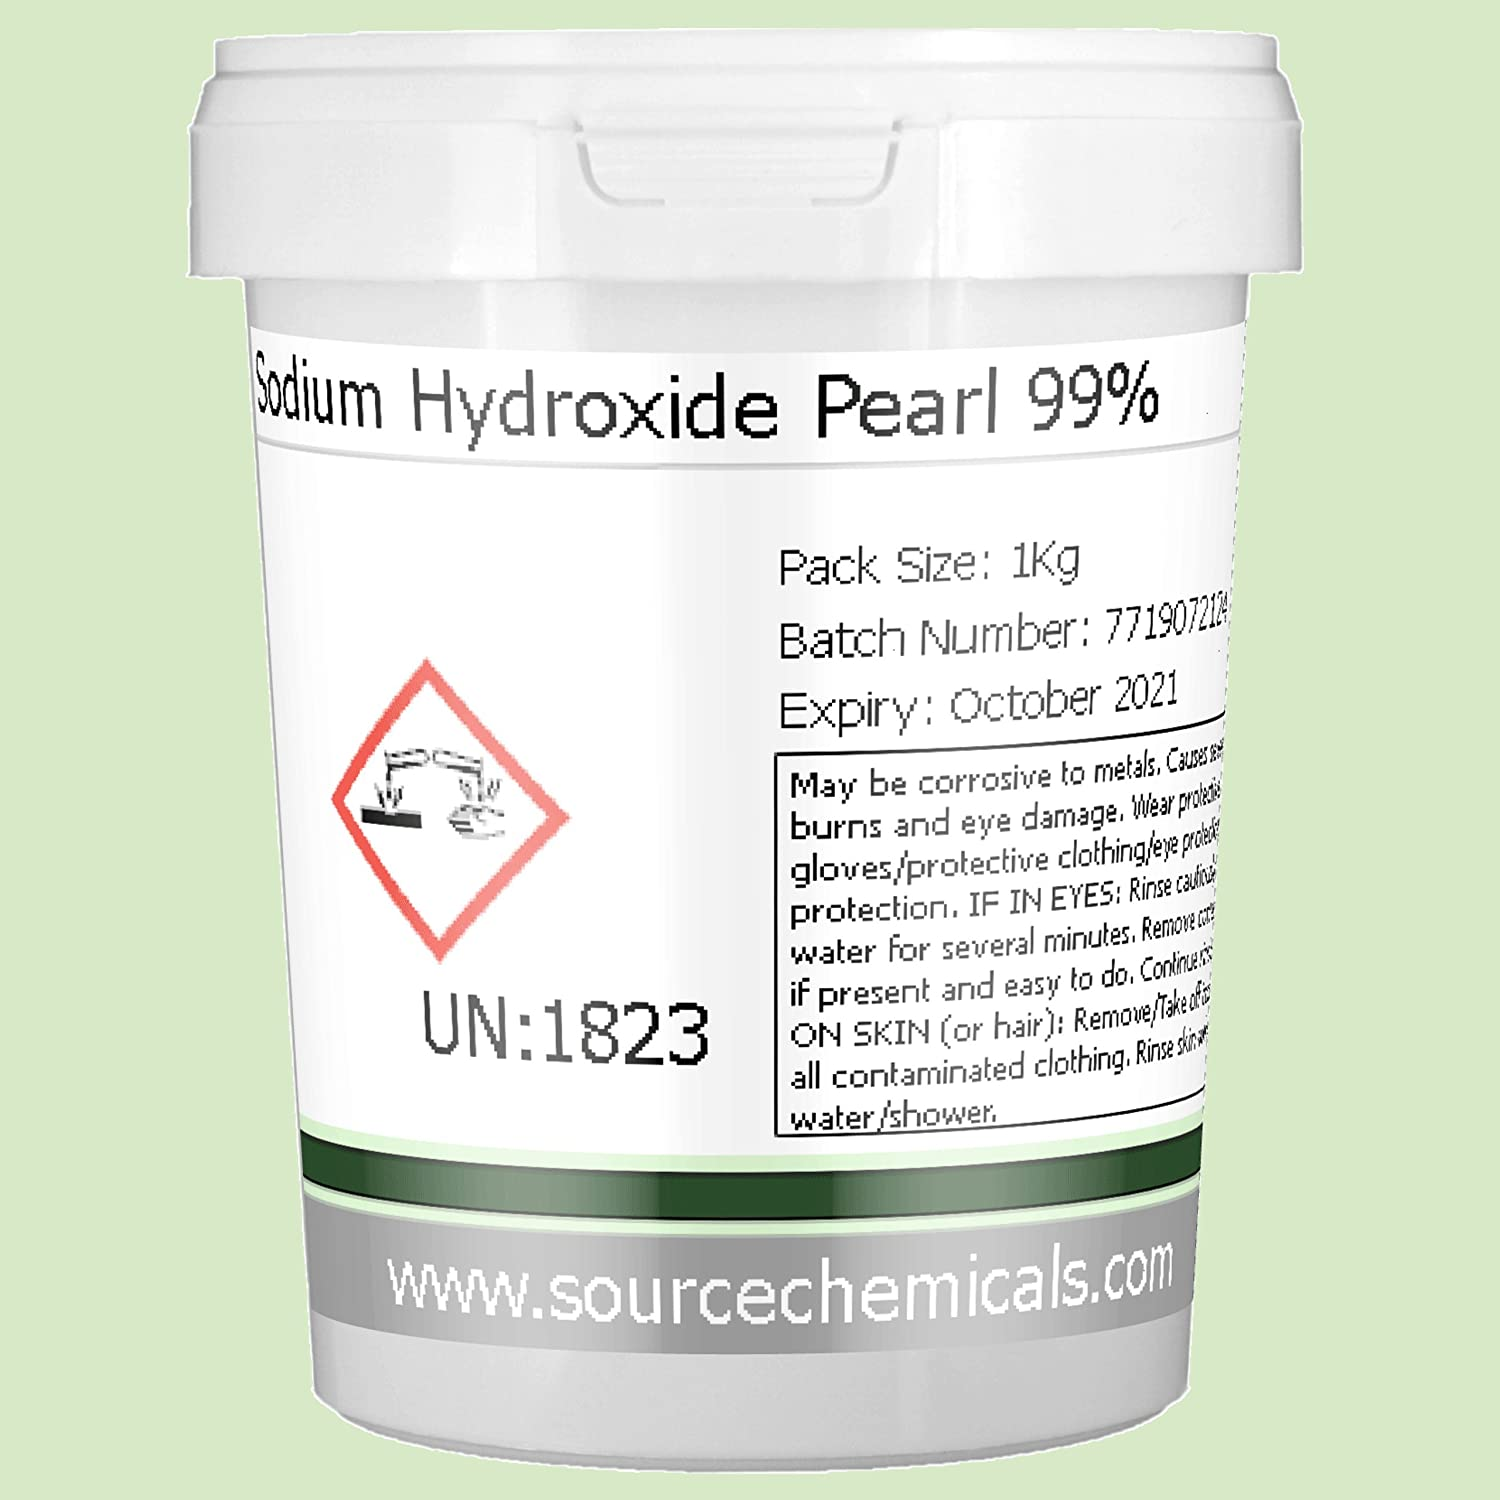 Sodium Hydroxide (Caustic Soda) 1Kg Including Courier Delivery Source Chemicals SOH-1KG-FR